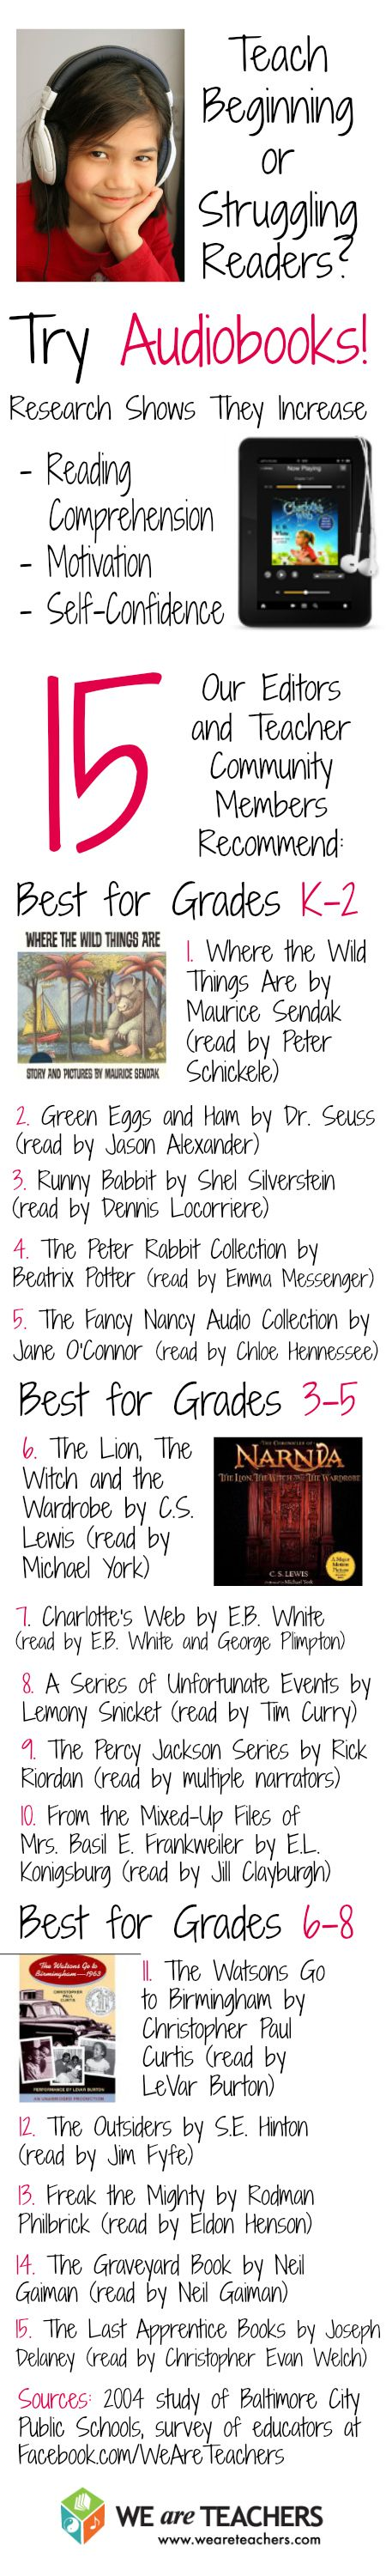 15 Fantastic Audiobooks for Grades K-8 - When it's reading time, you don't necessarily think about students pulling headphones and iPods out of their desks rather than a worn paperback. But audiobooks can be a fantastic learning tool, especially for beginning and struggling readers. We asked our Facebook community to share some of their favorite titles to use in the classroom. Discover their favorites below.